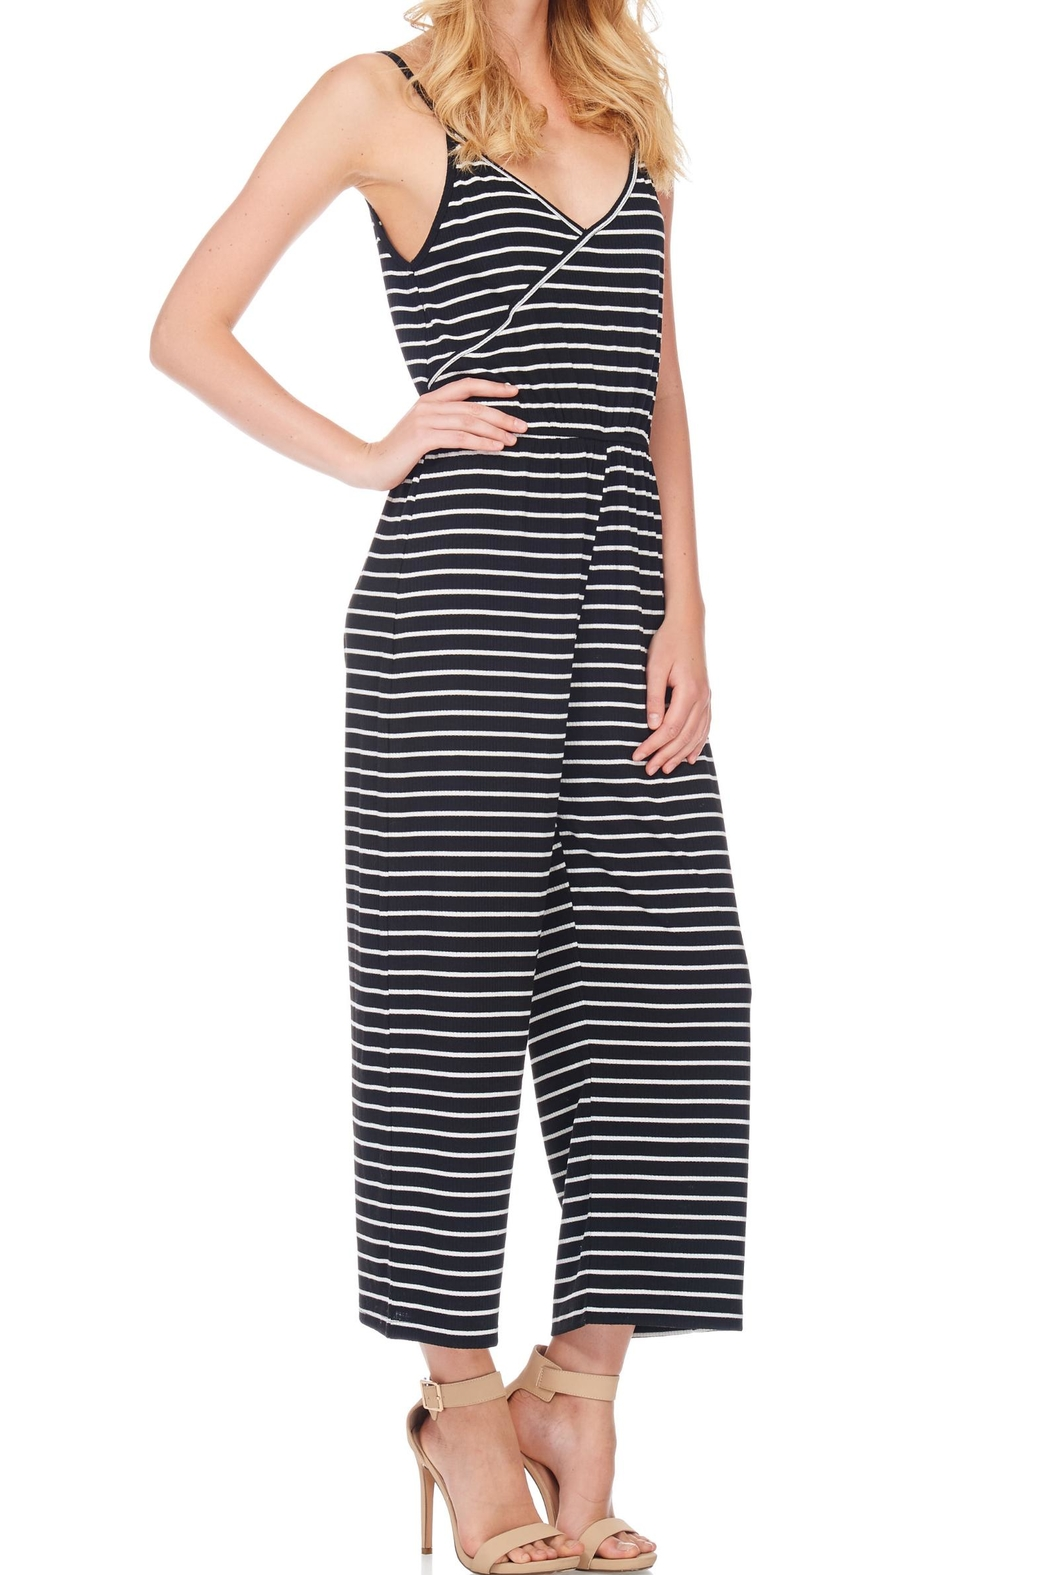 Anama Striped Surplice Romper - Front Full Image